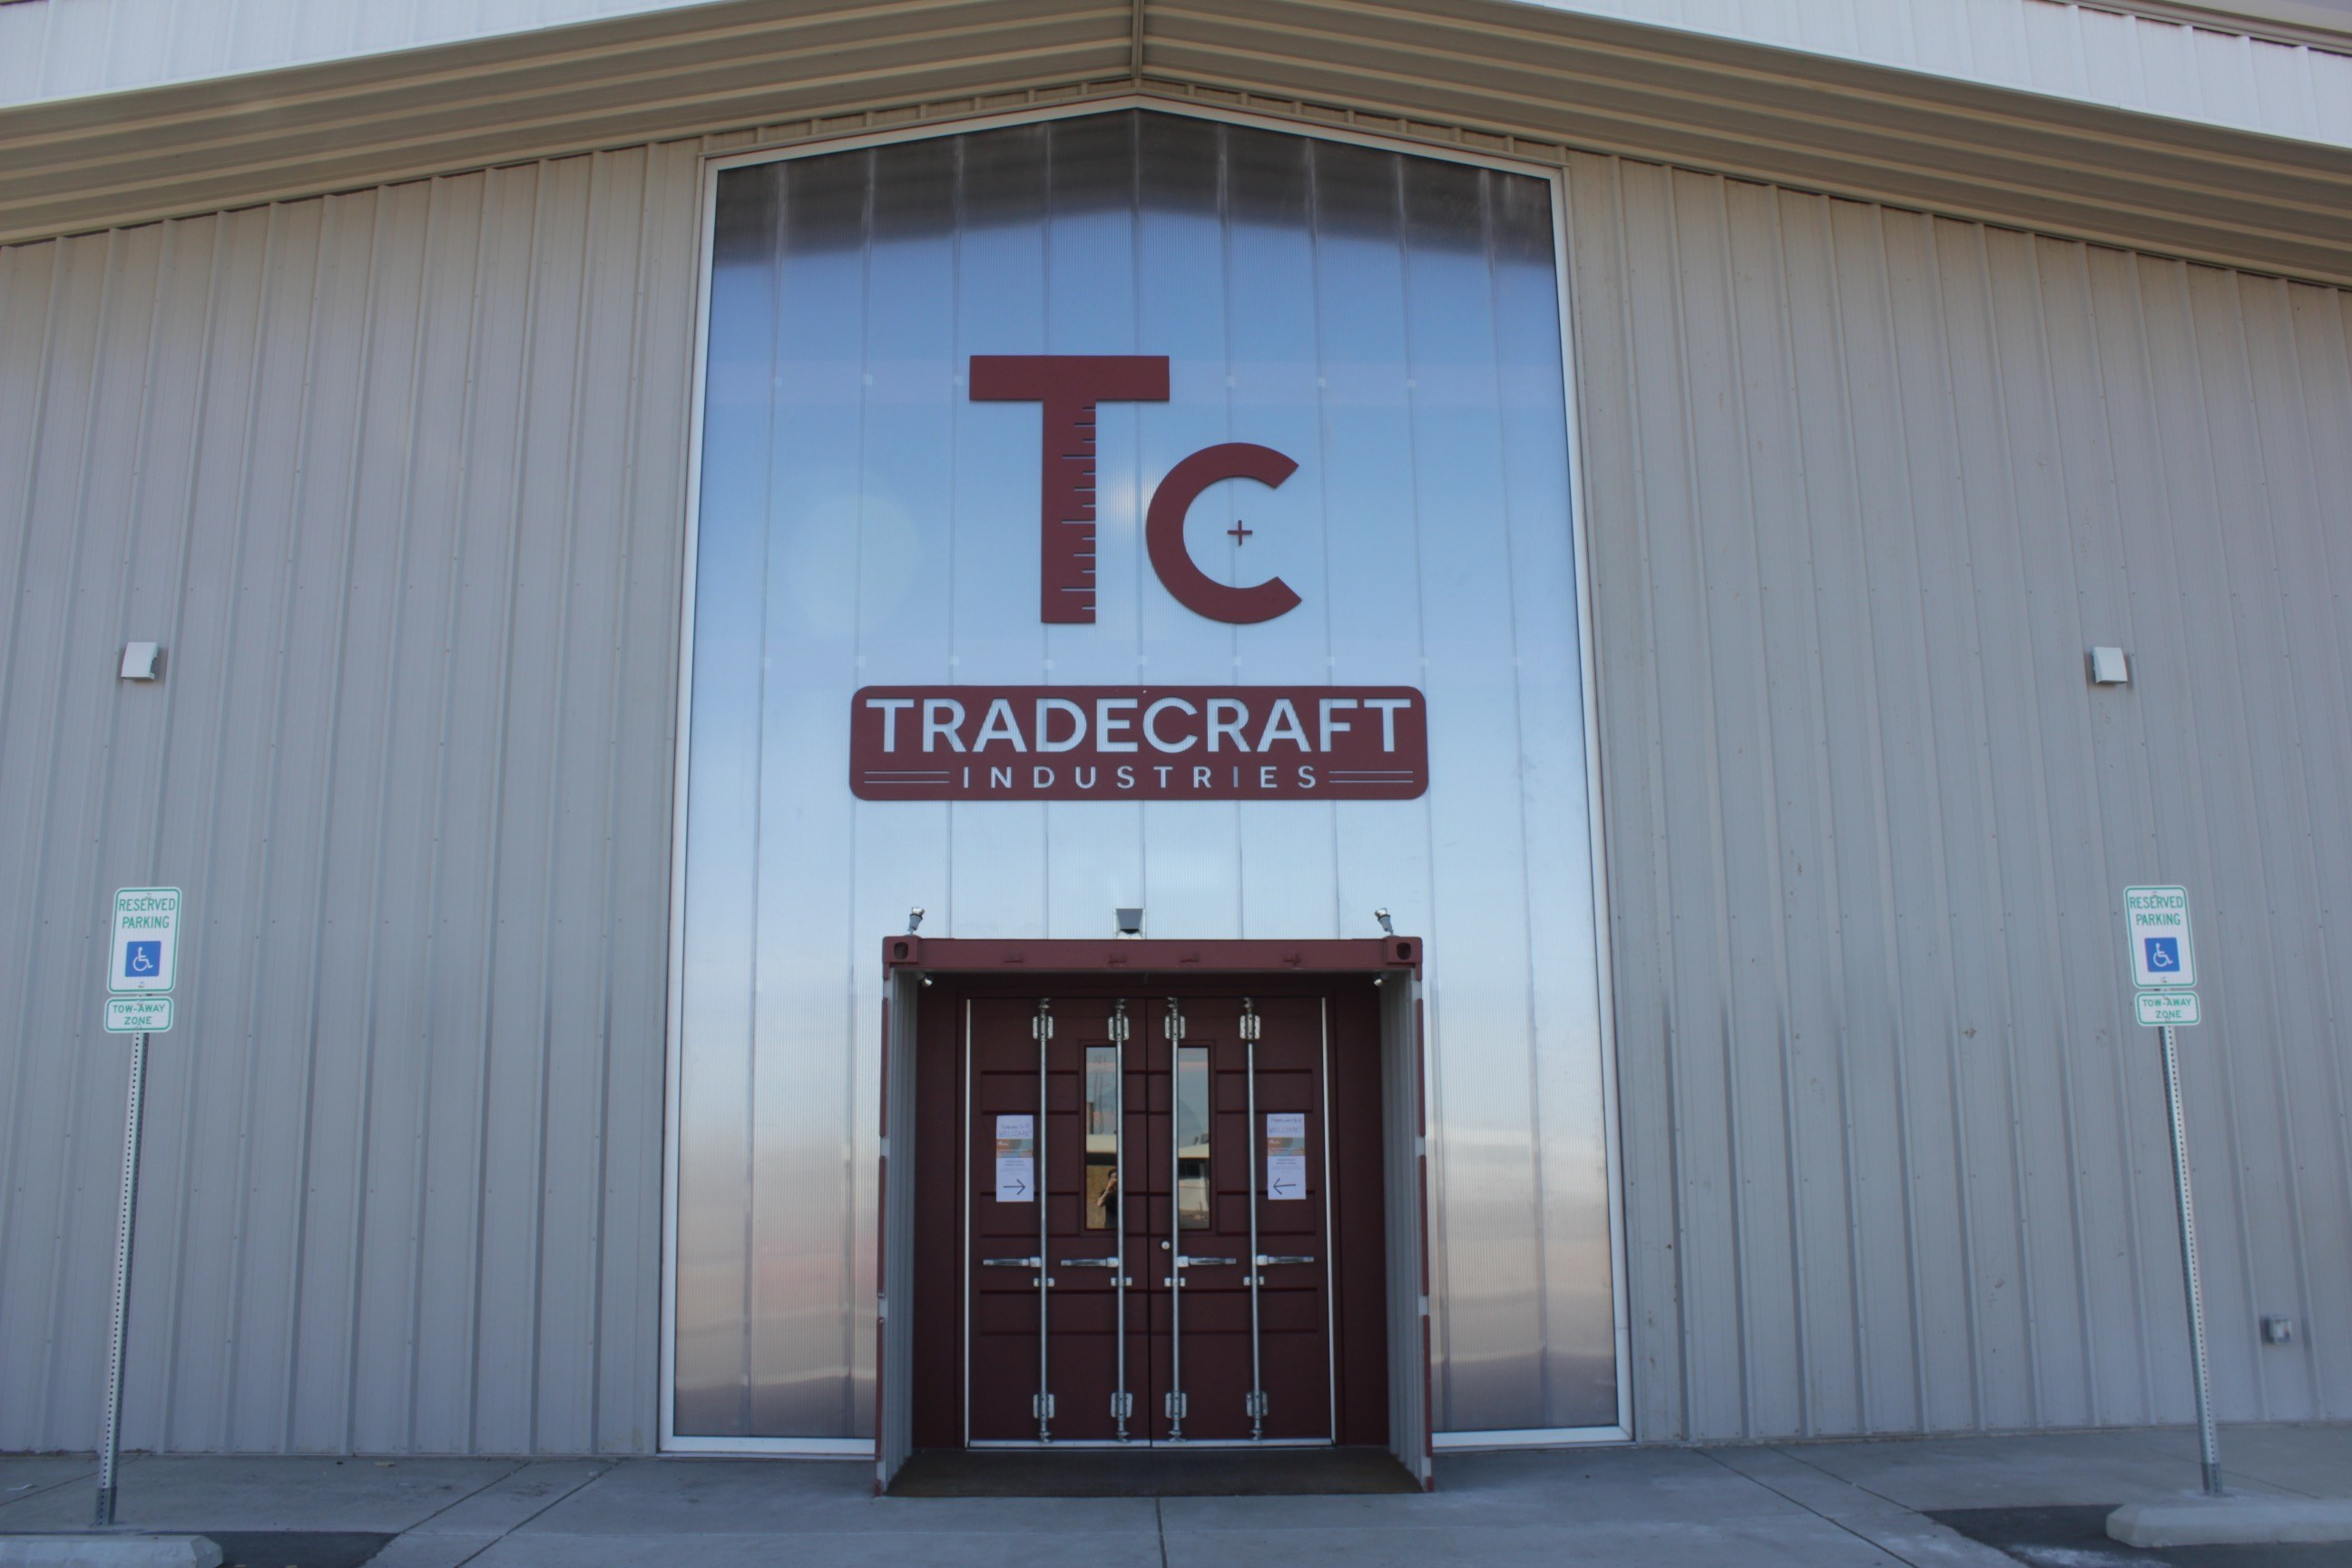 TradeCraft Industries